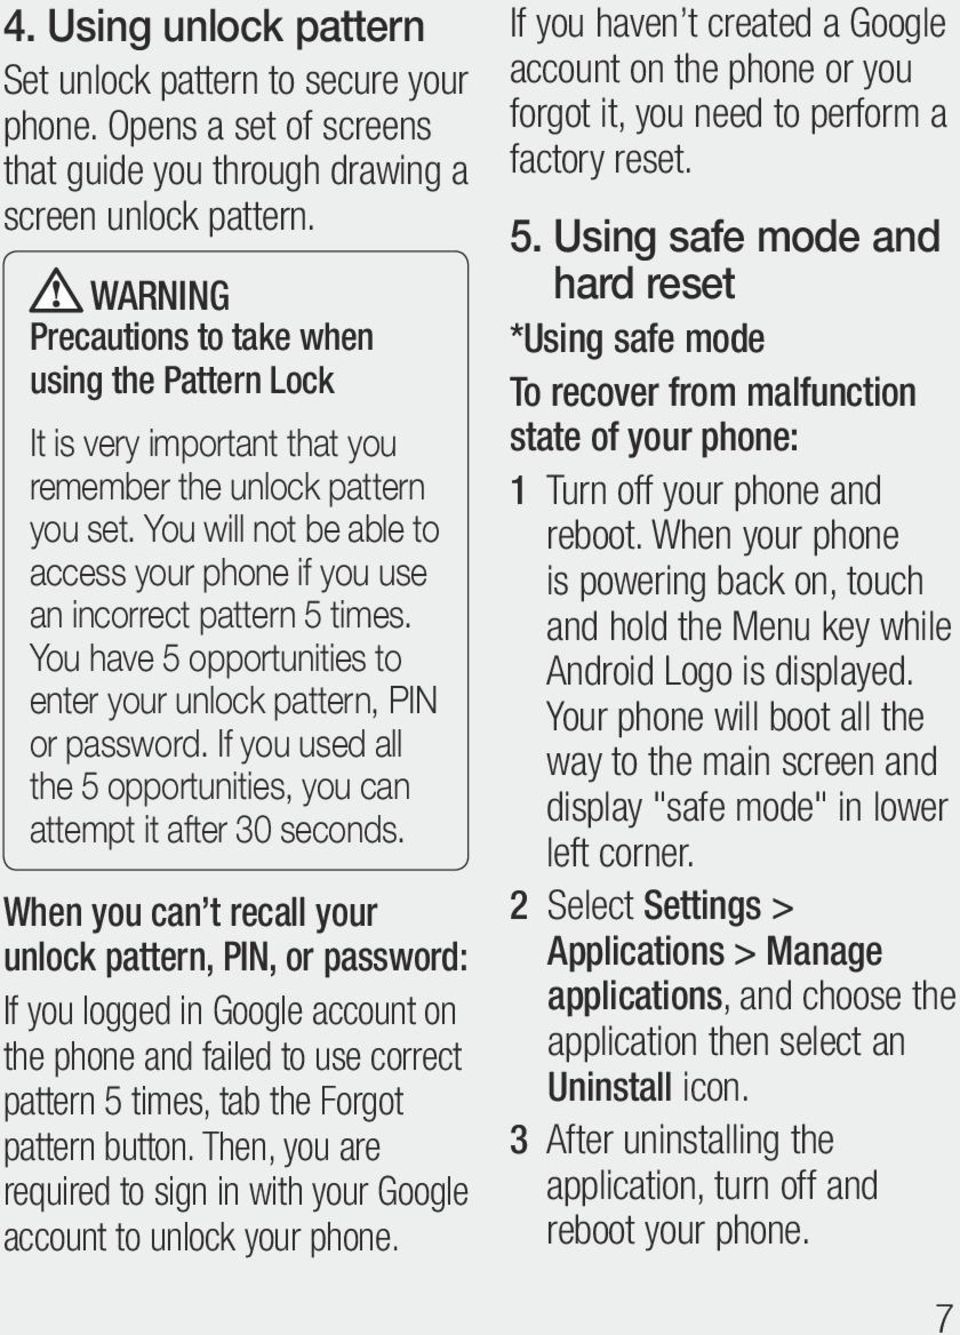 You will not be able to access your phone if you use an incorrect pattern 5 times. You have 5 opportunities to enter your unlock pattern, PIN or password.